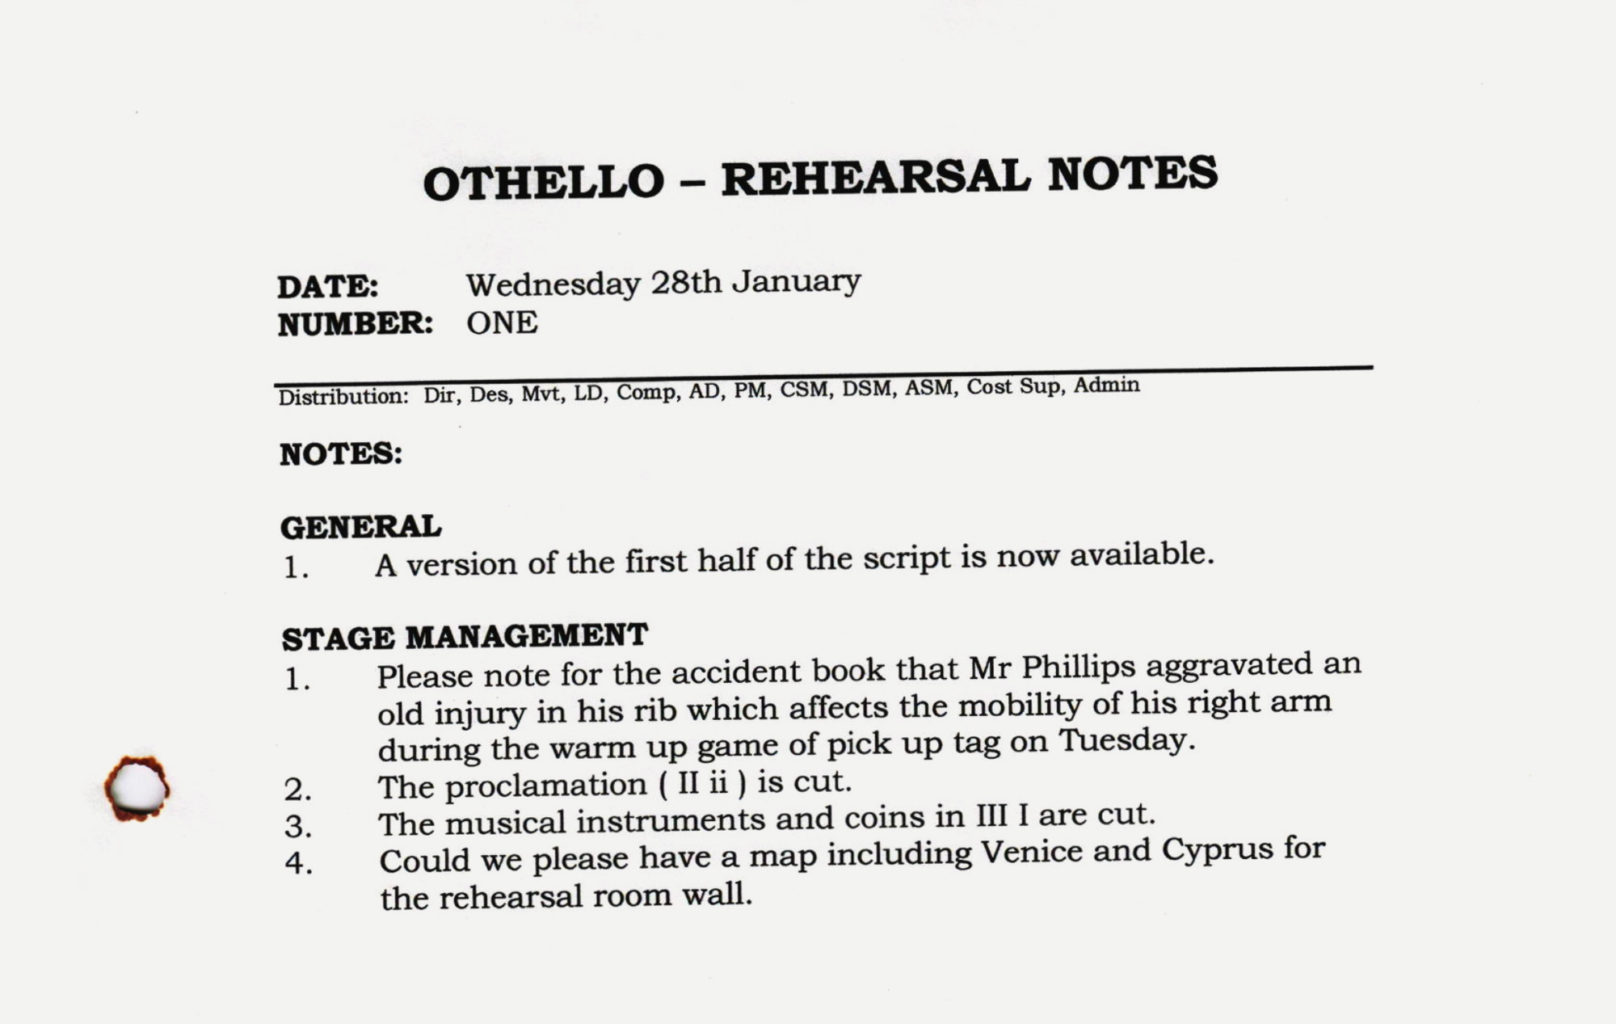 Rehearsal notes from Othello rehearsals 2004